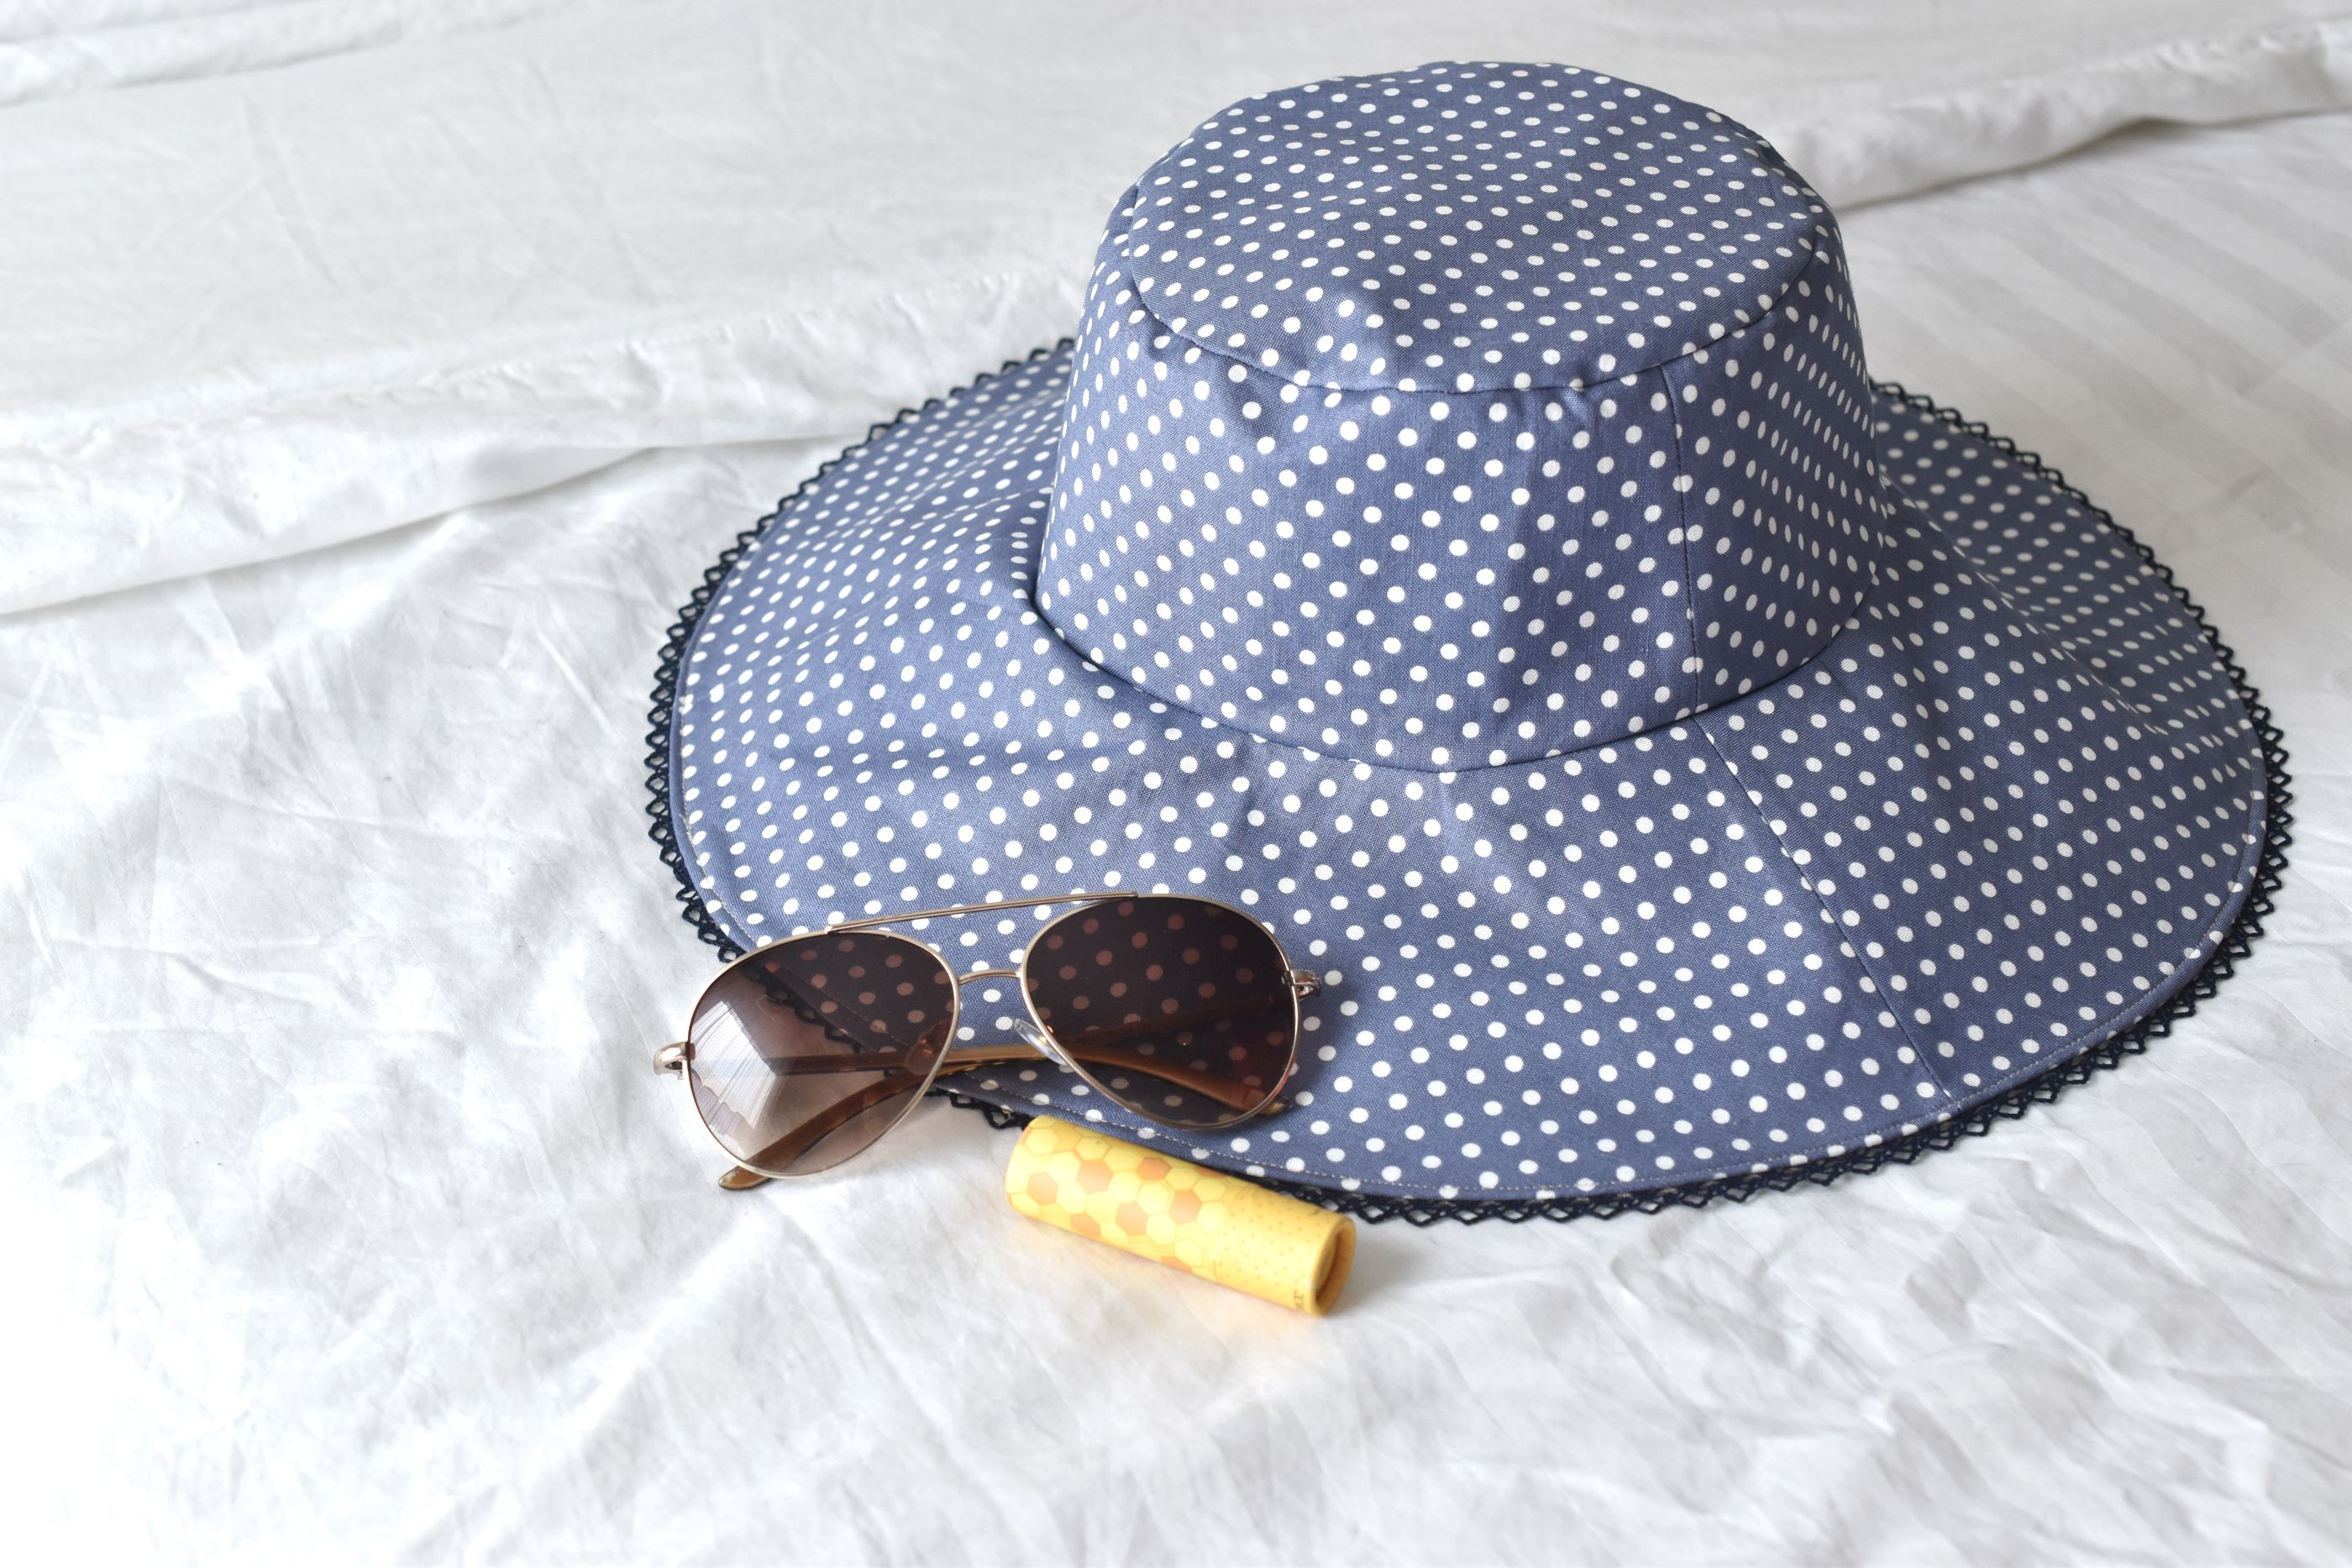 8e93dda571771 How to Sew a Reversible Sun Hat